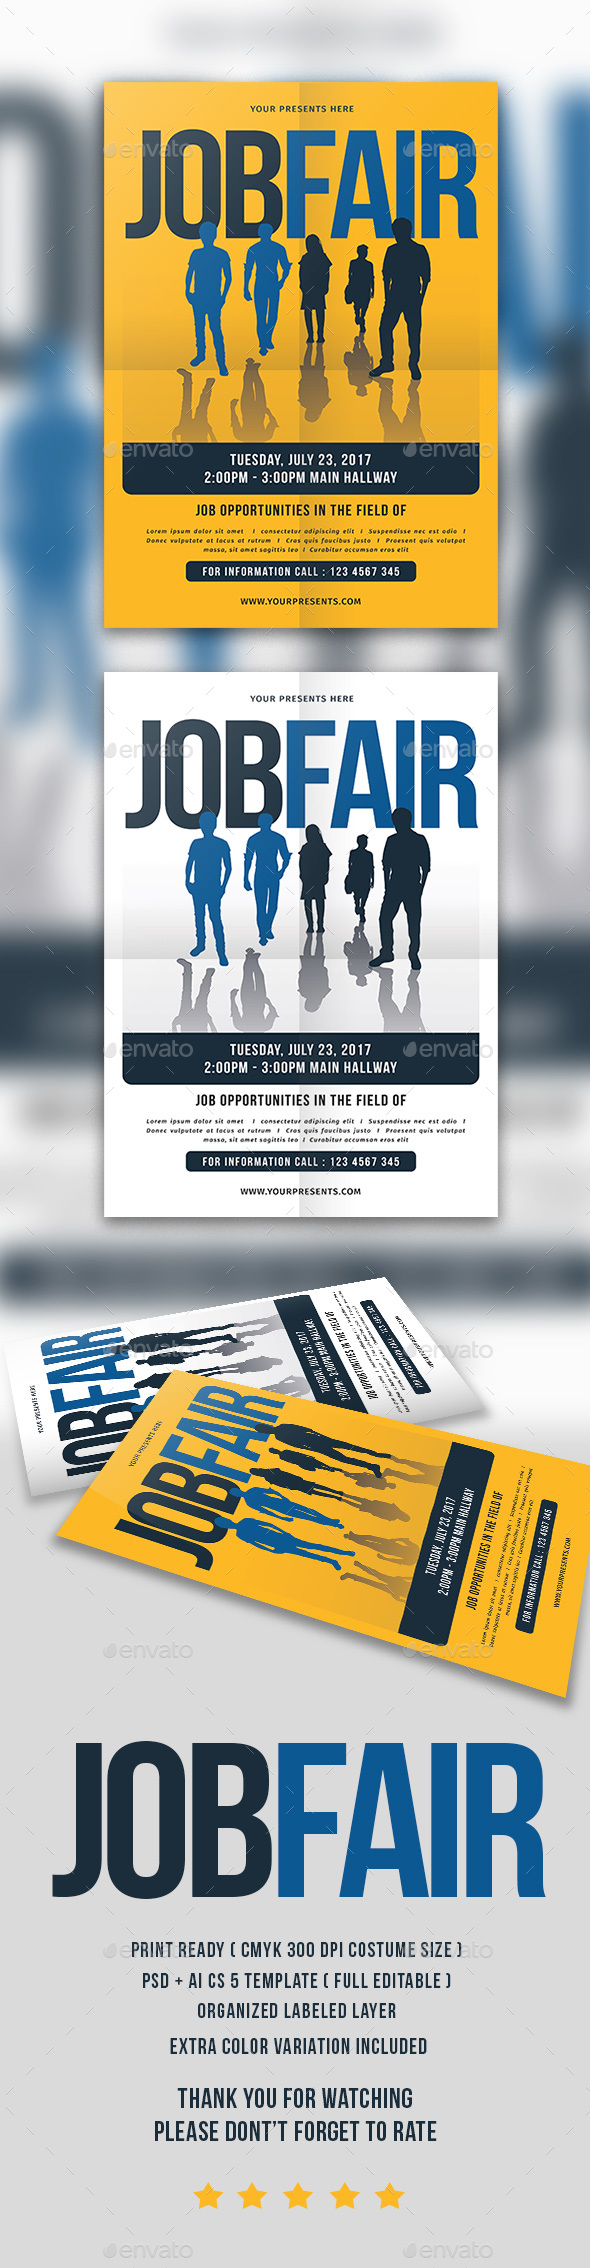 Job fair flyer by lilynthesweetpea graphicriver job fair flyer flyers print templates pronofoot35fo Gallery